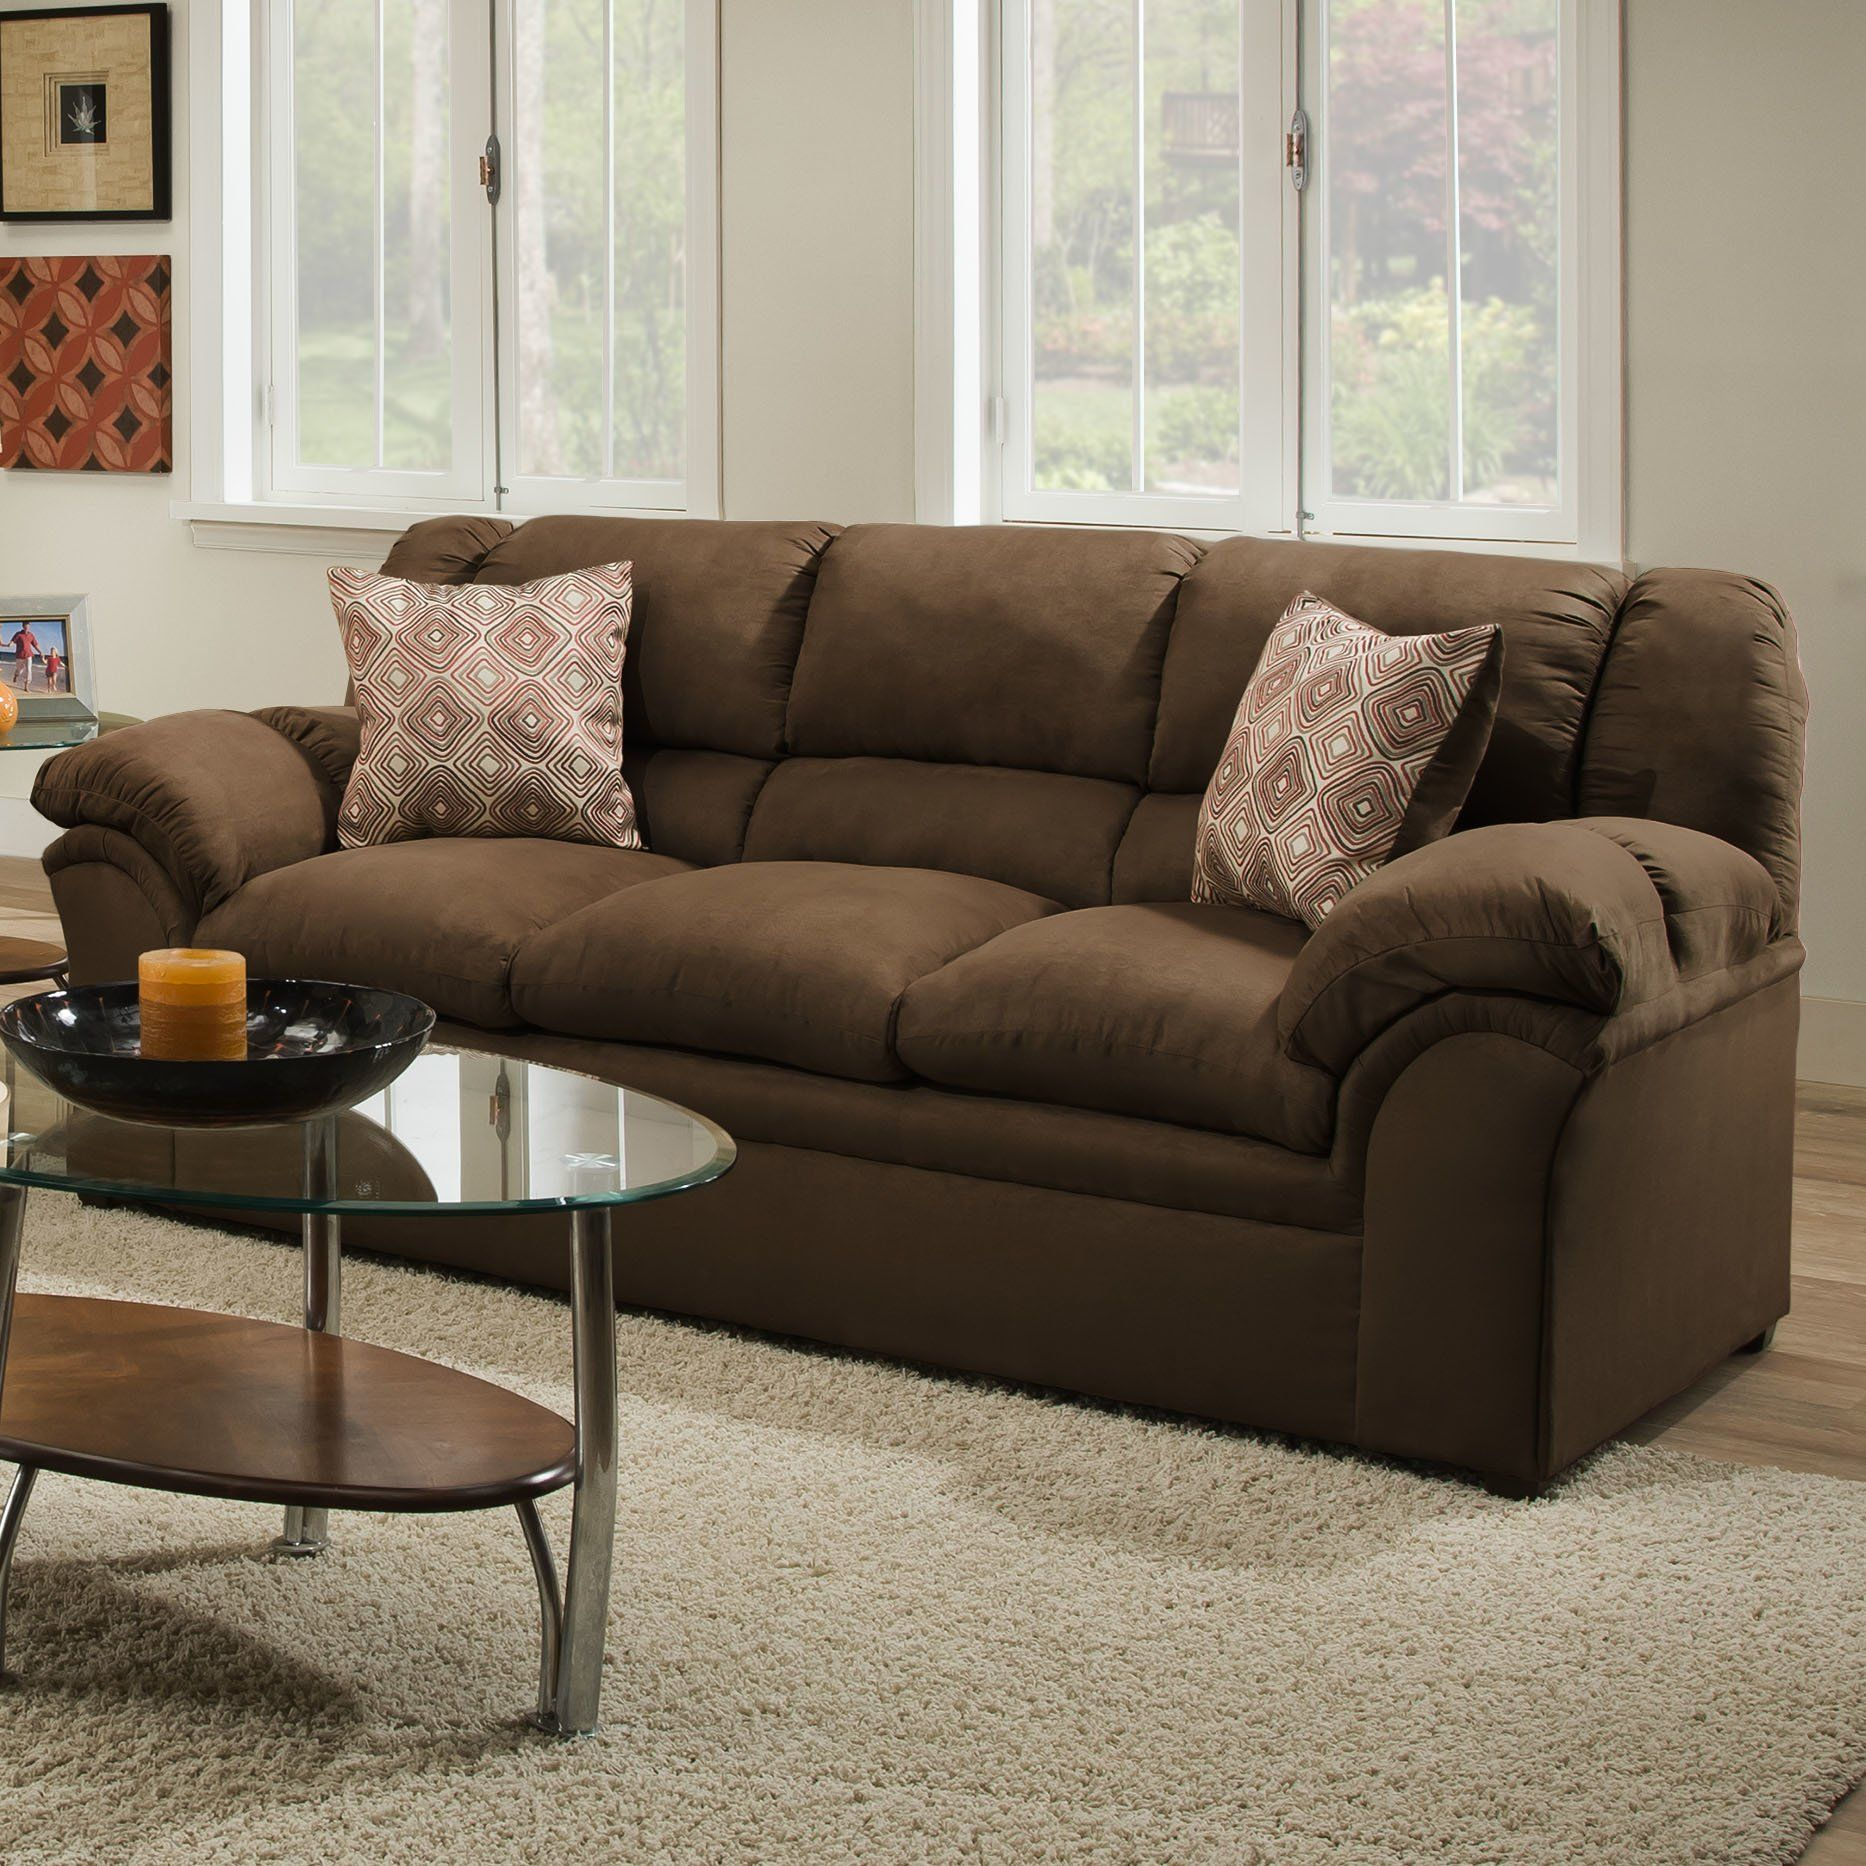 nice Simmons Couch Perfect Simmons Couch 69 Modern Sofa